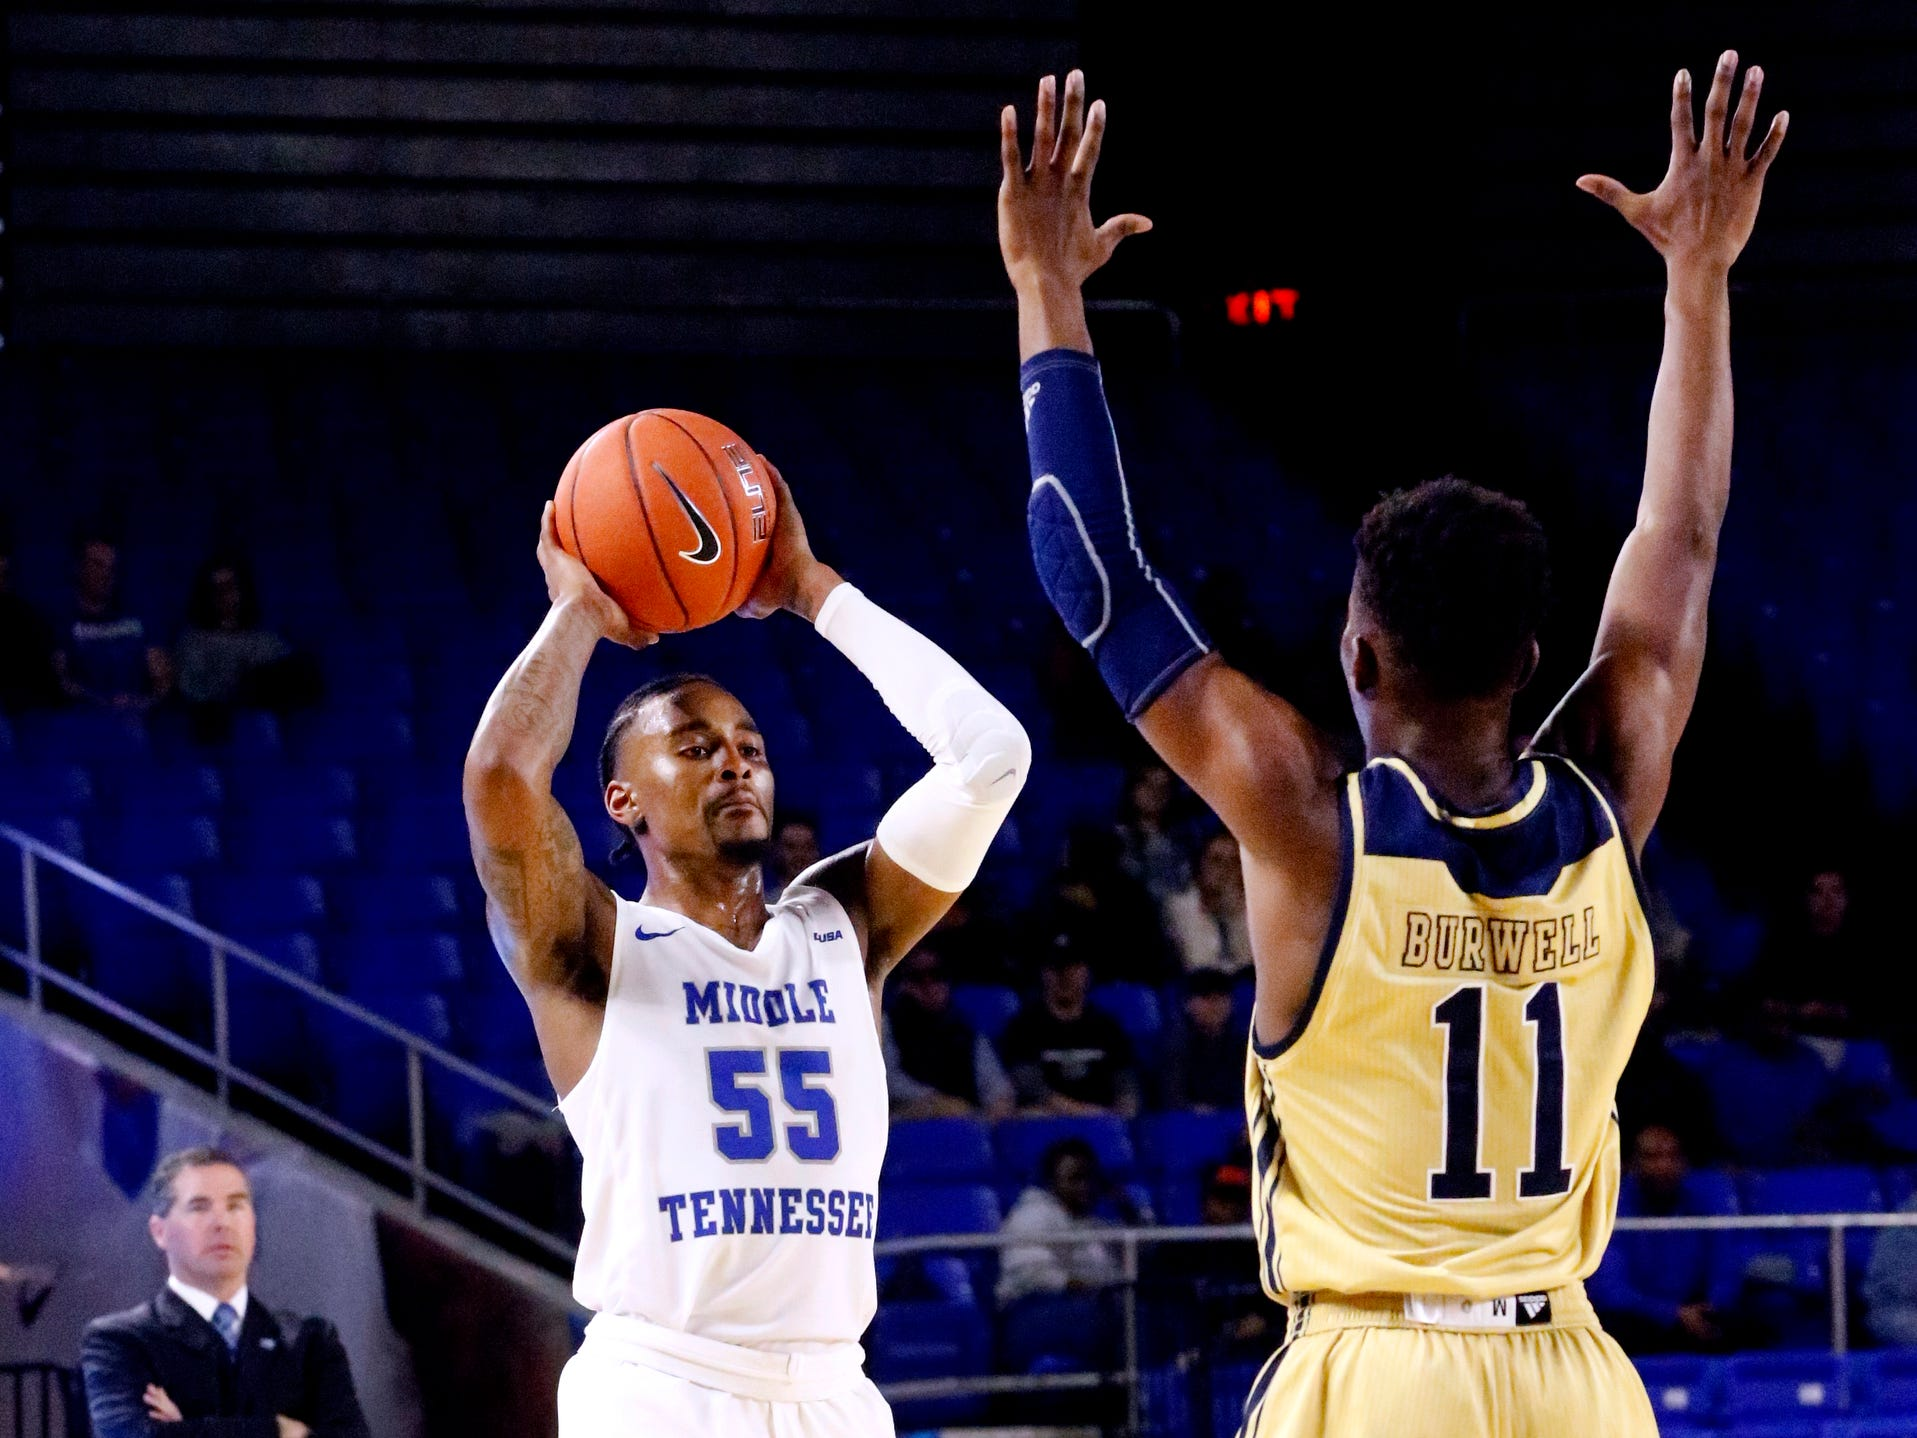 MTSU's guard Antonio Green (55) goes or a shot as FIU's guard Marcus Burwell (11) guards him on Thursday Jan. 3, 2019, at MTSU.